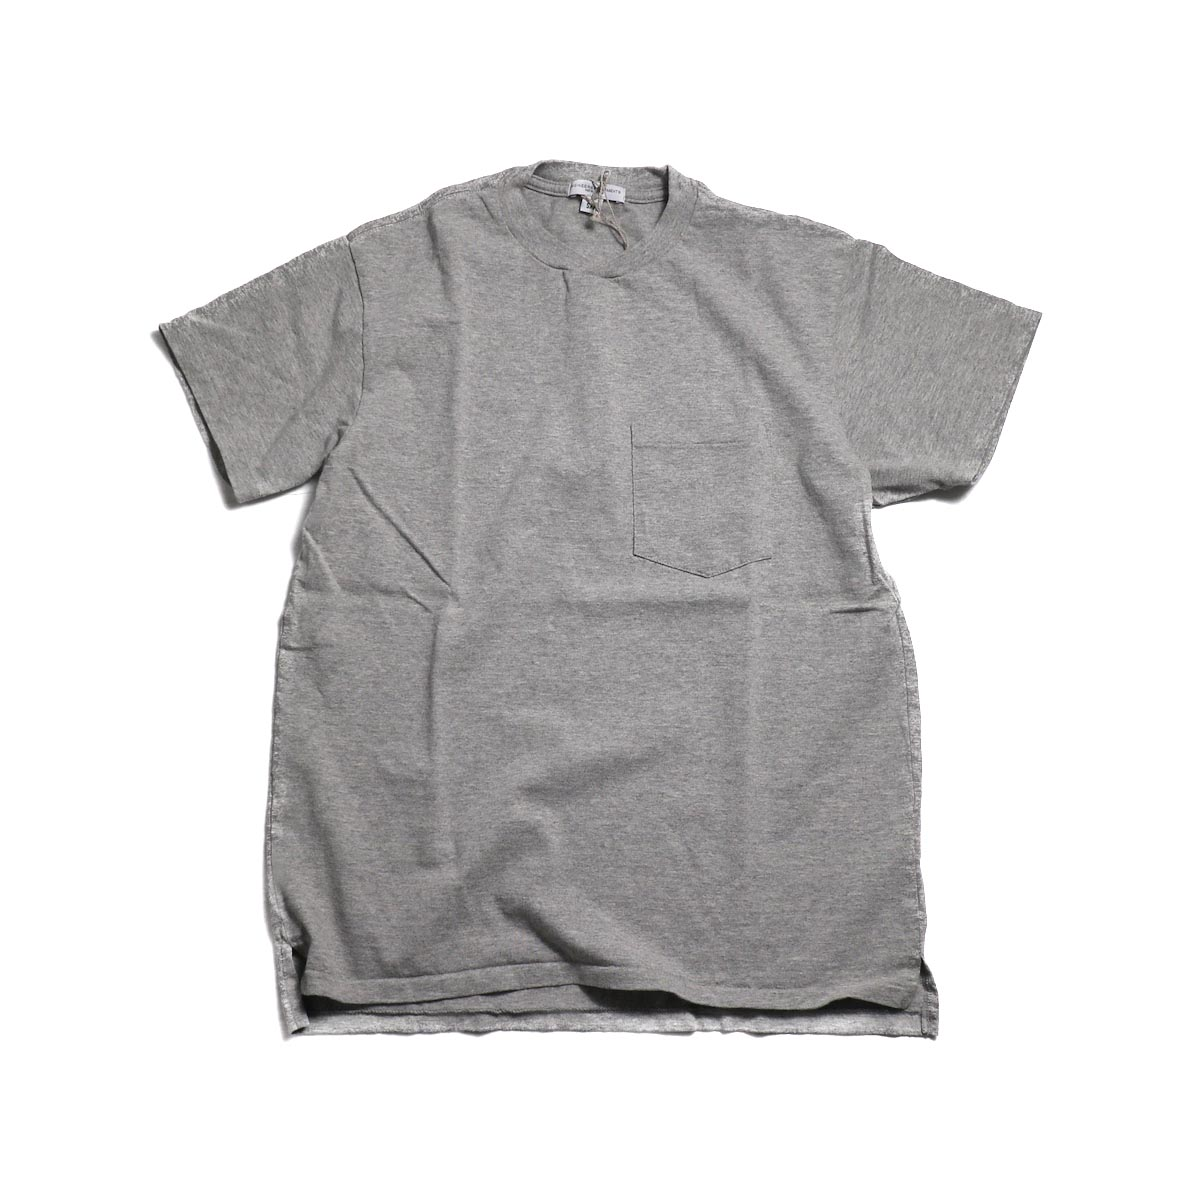 ENGINEERED GARMENTS Workaday / Crossover Neck Pocket Tee -Gray